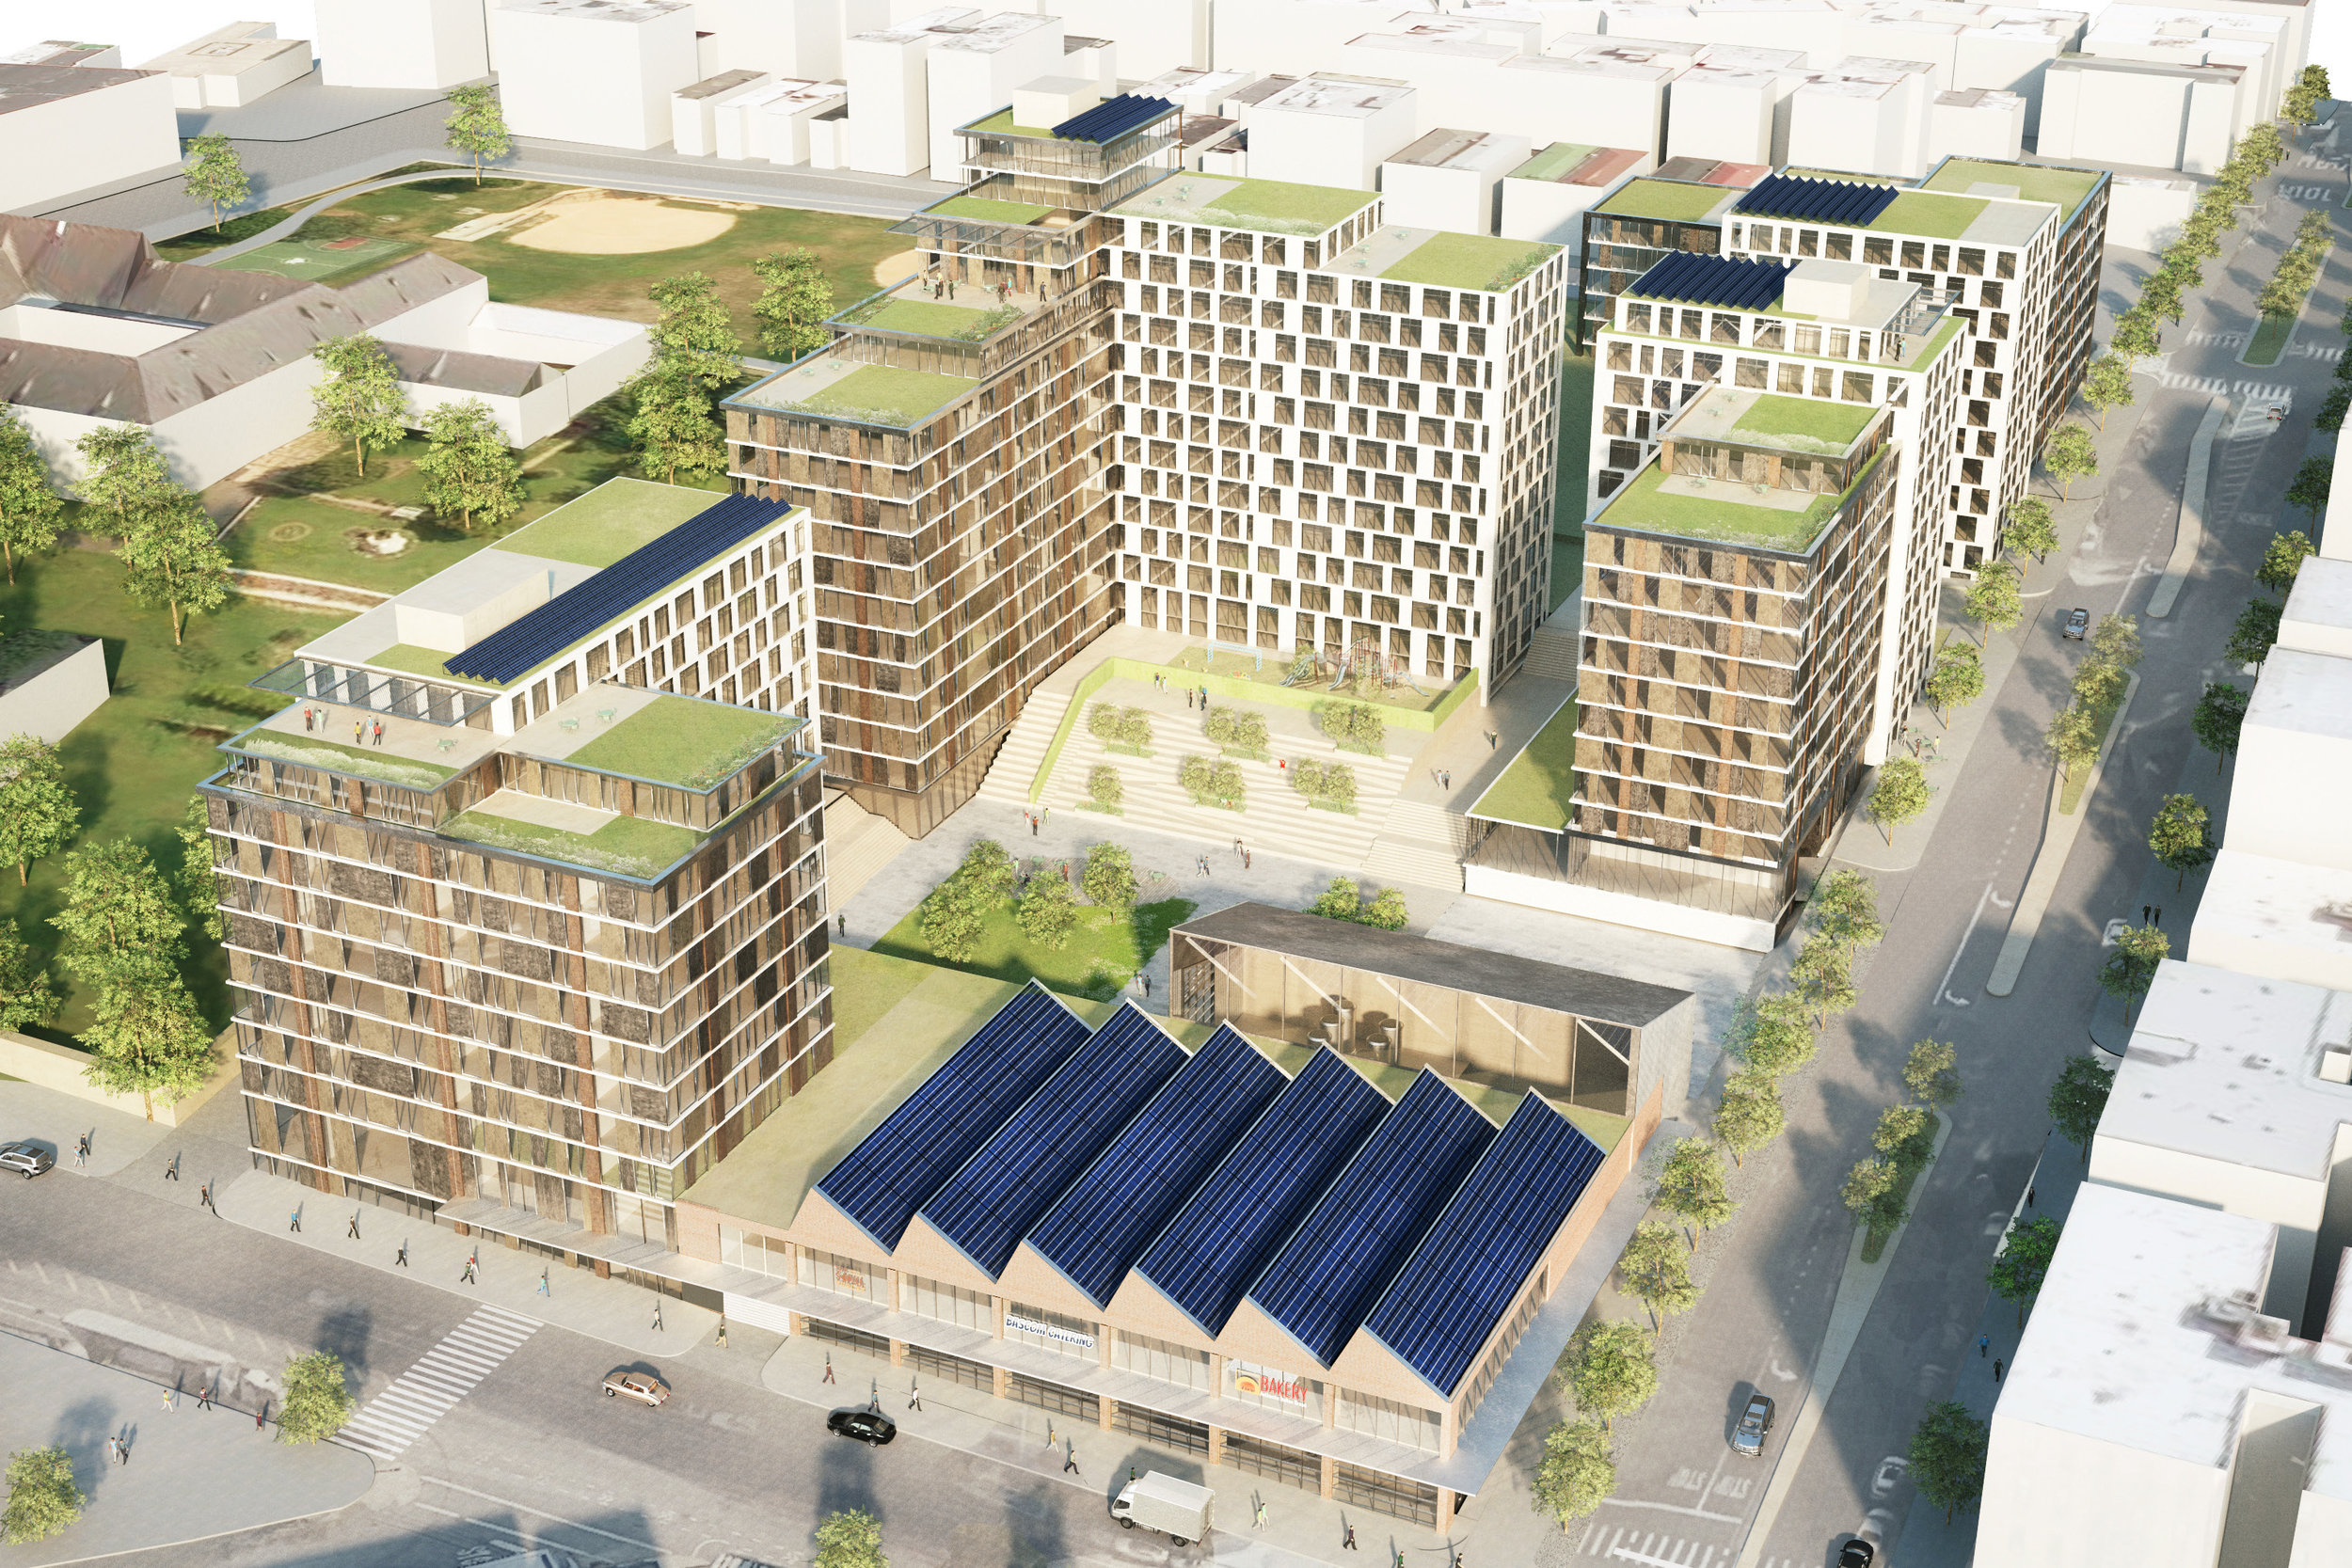 A rendering of the Peninsula (credit: WXY Architecture + Urban Design)